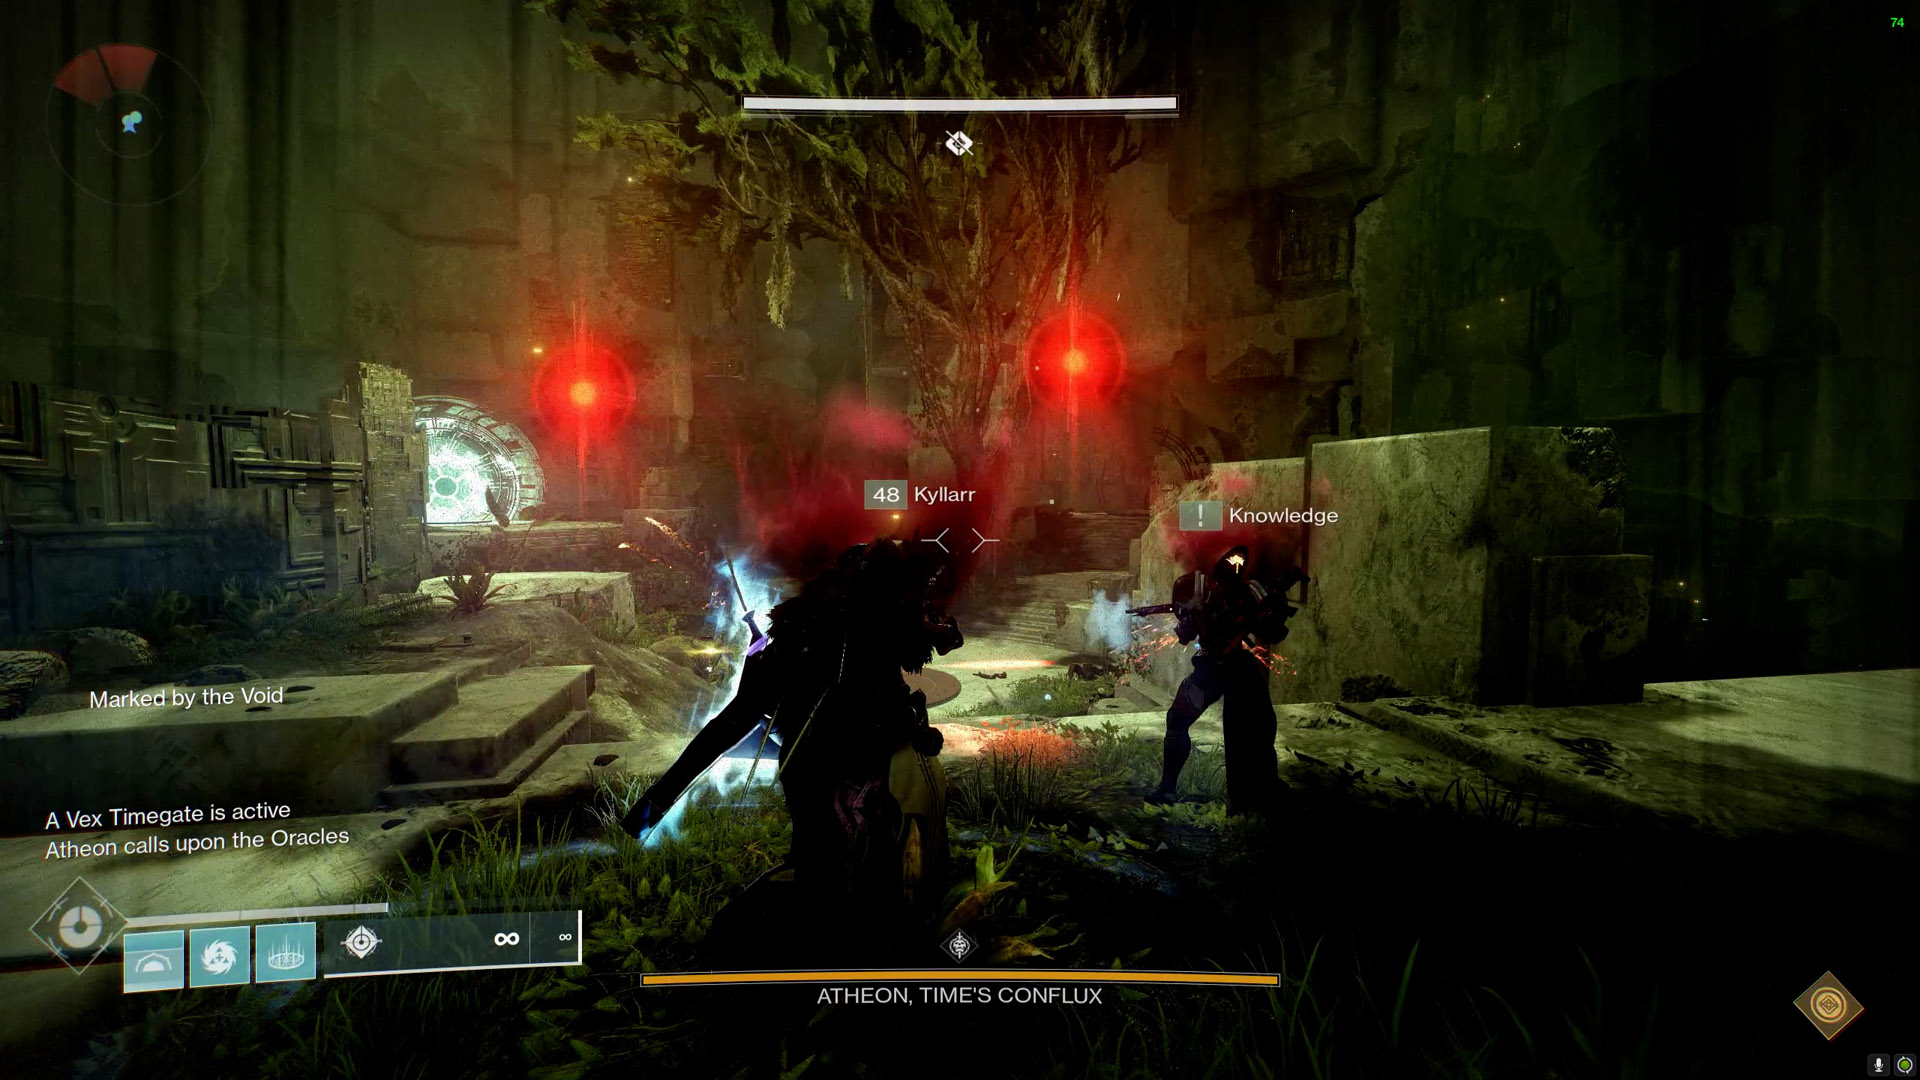 destiny 2 vault of glass atheon teleported oracles